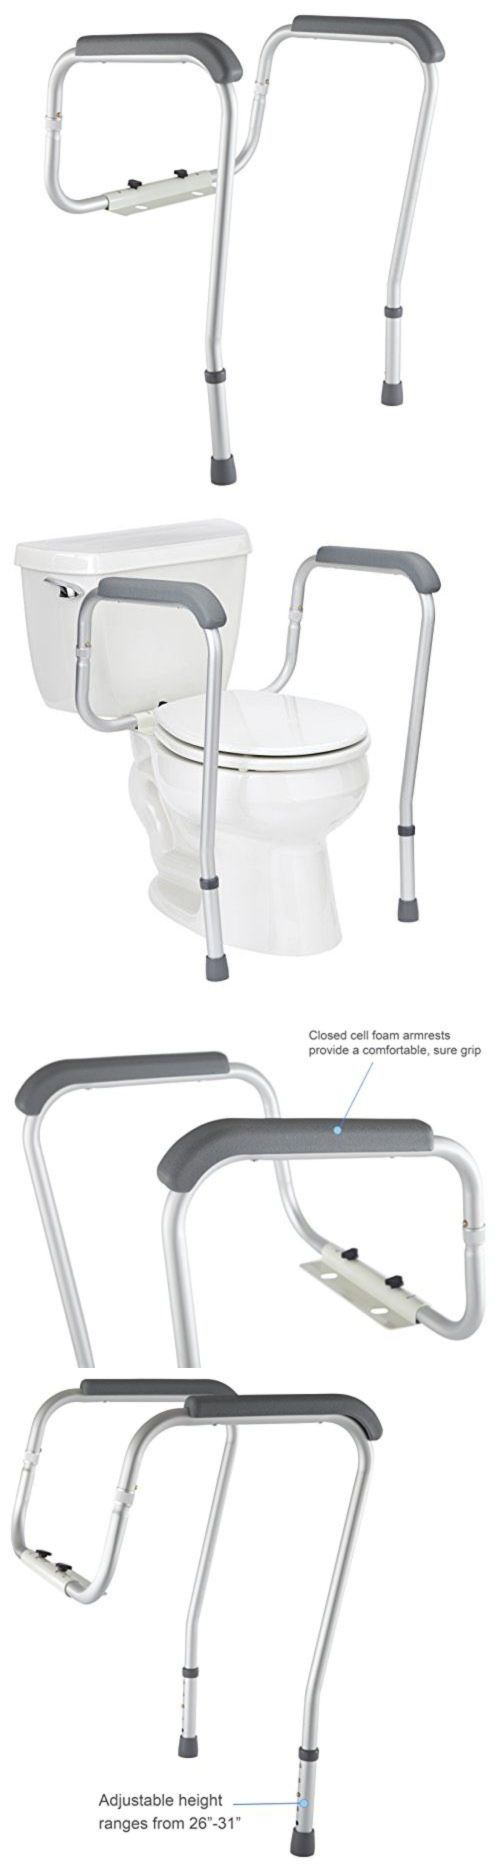 Toilet Grab Bar Height Ada best 25+ handicap toilet ideas on pinterest | ada toilet, handicap